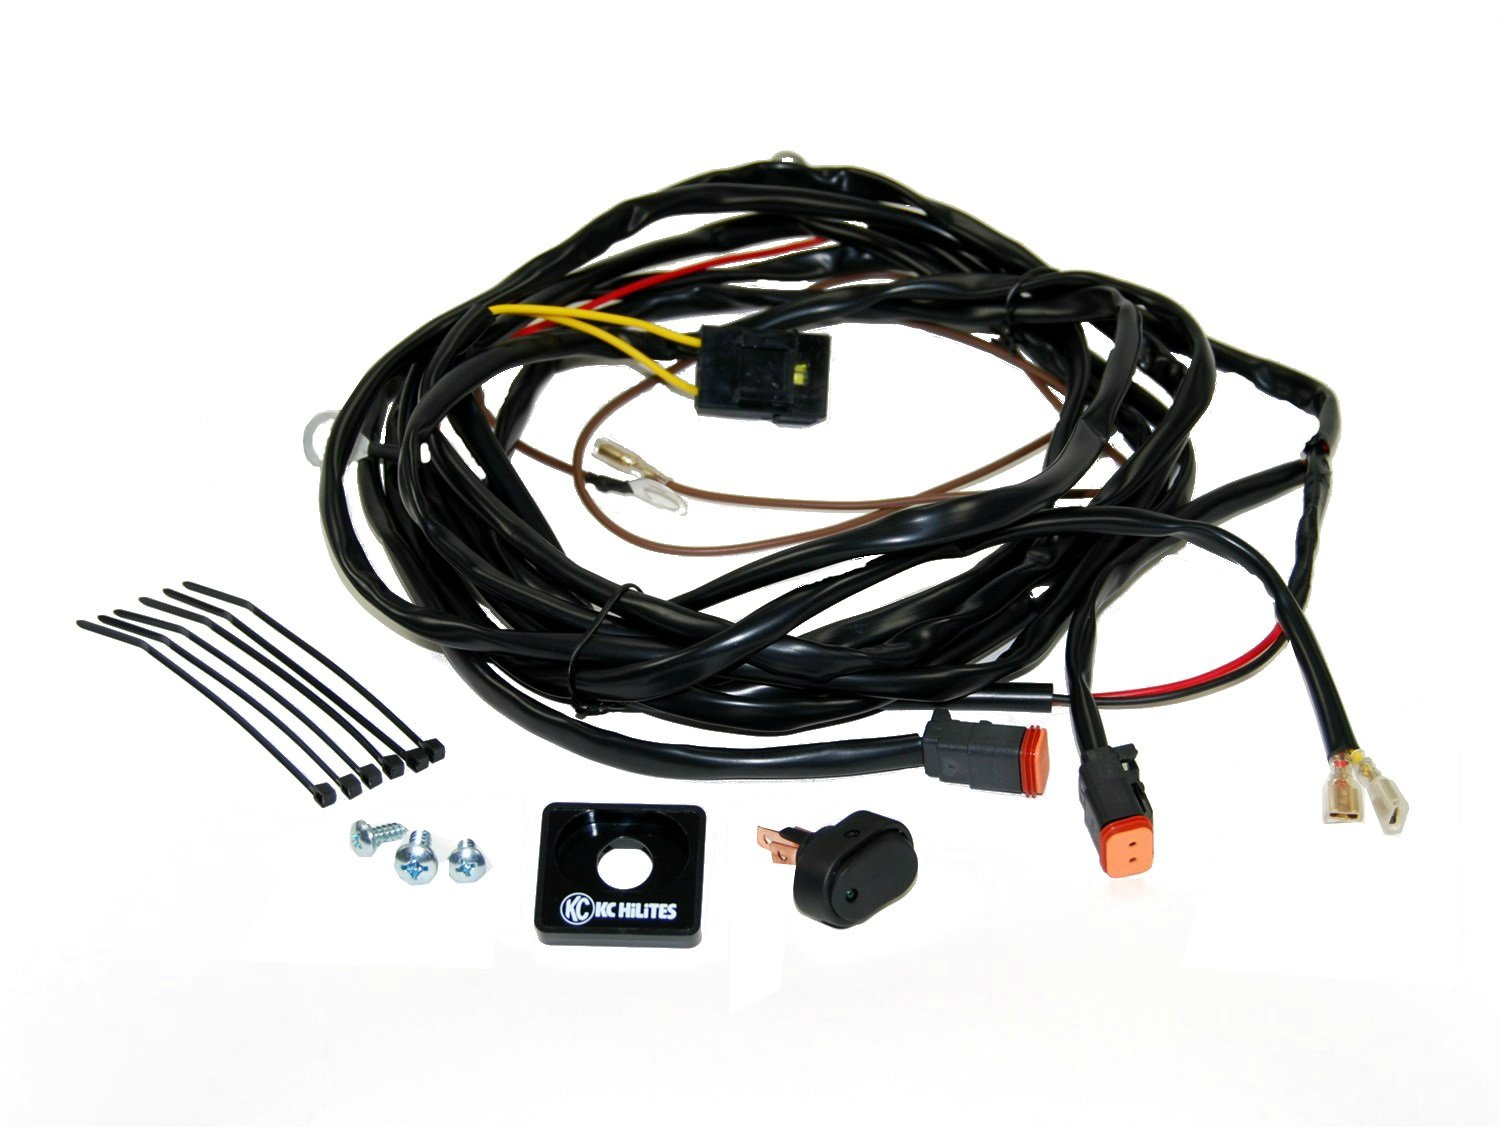 718WMAThaiL._SL1500_ amazon com kc hilites (6308) 110w wiring harness with 2 pin 16 Pin Wire Harness Diagram at gsmx.co